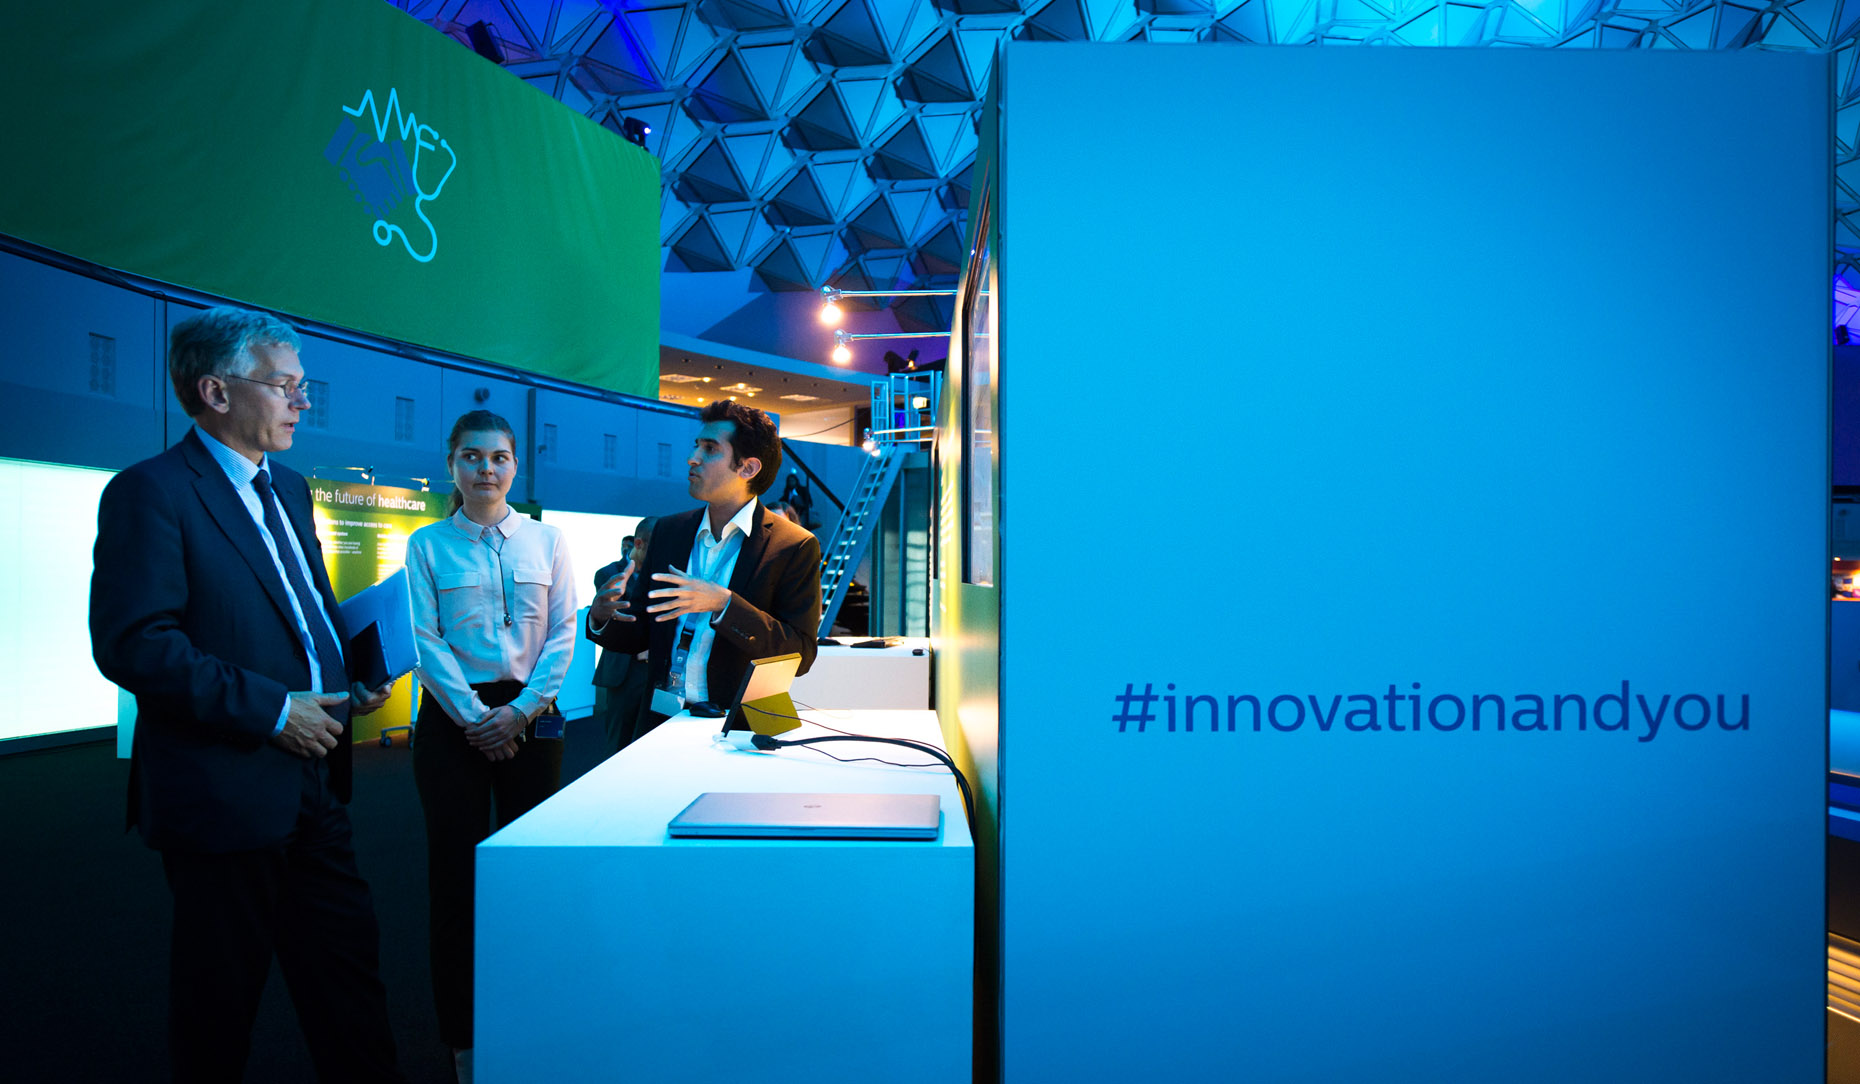 Philips_Innovation_Experience_2014_1